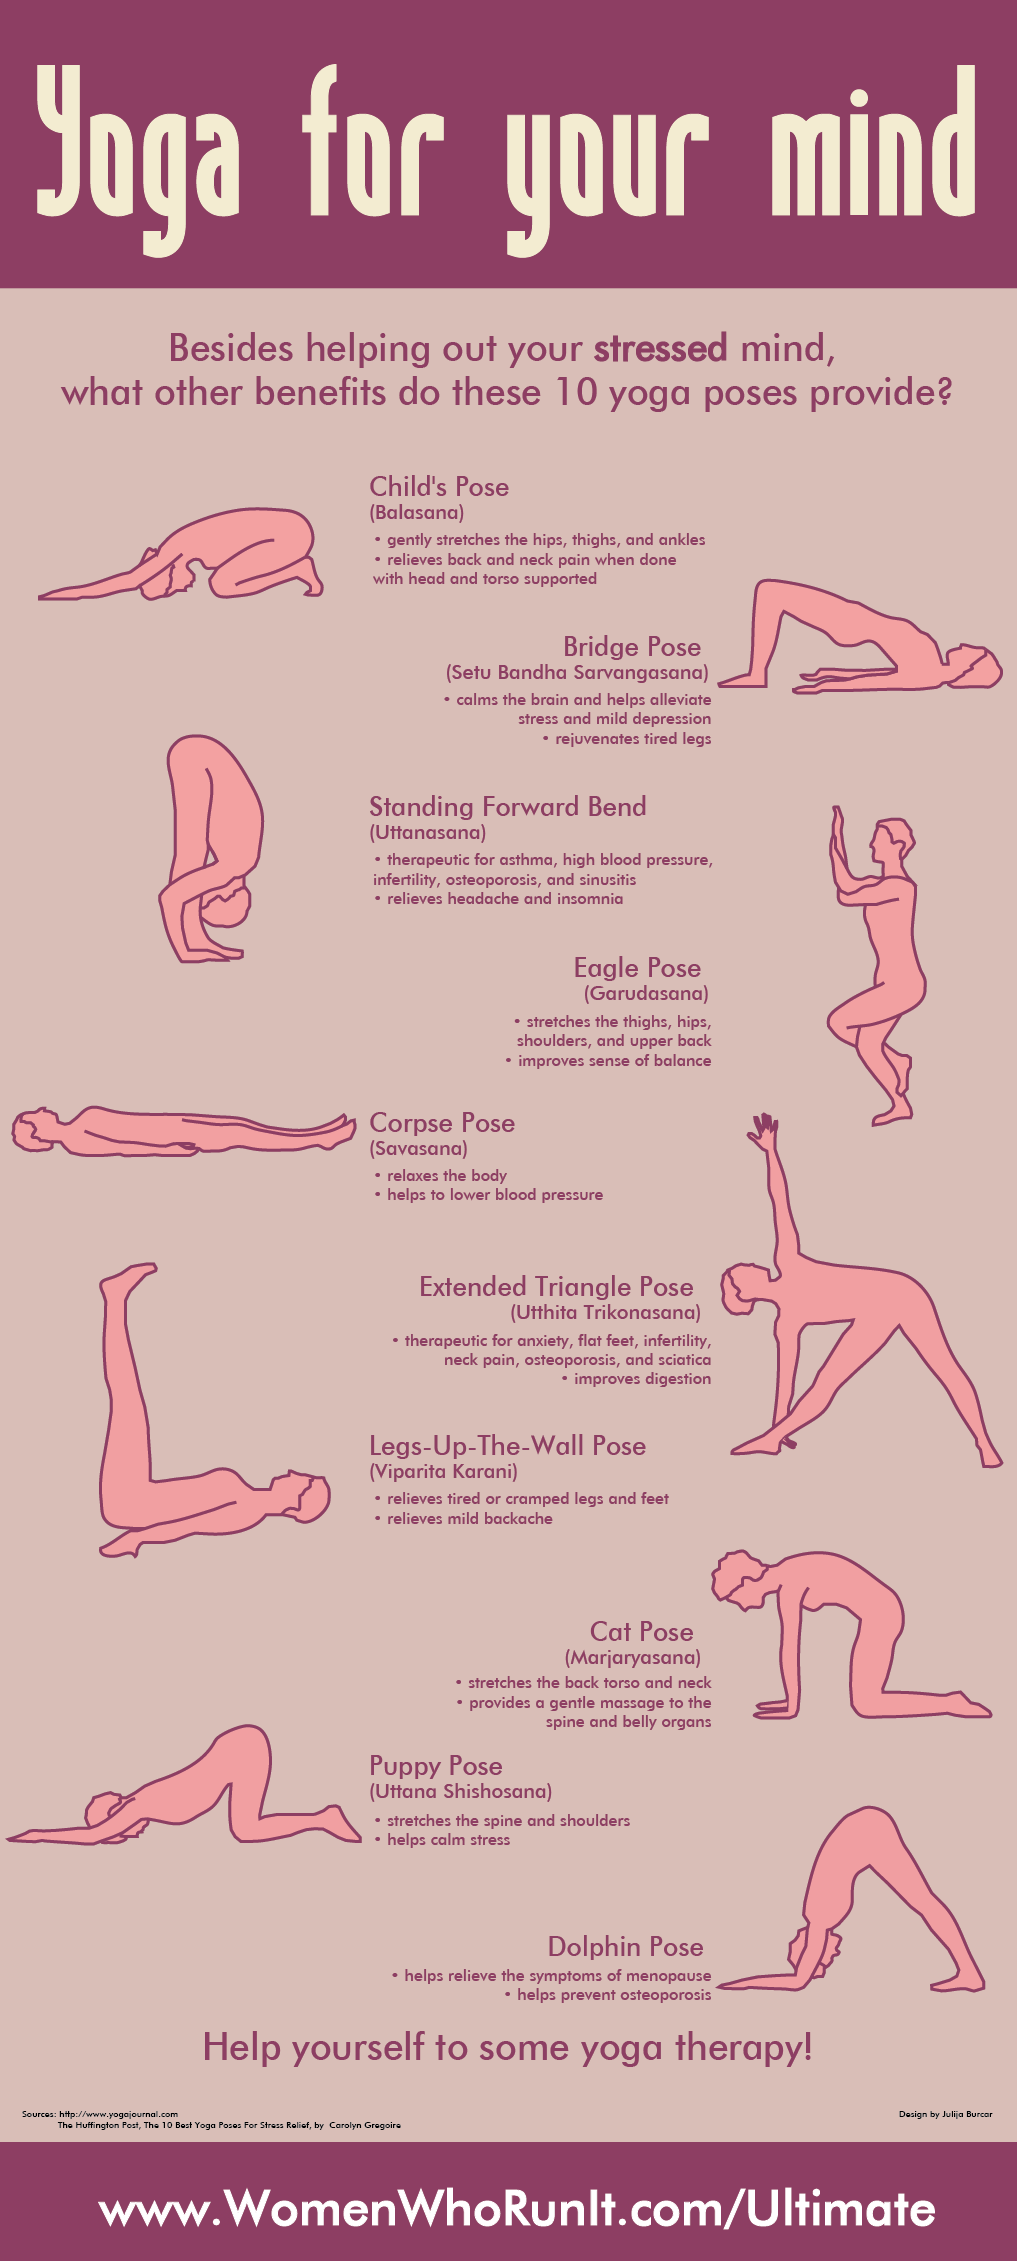 Yoga For Your Mind - PNG